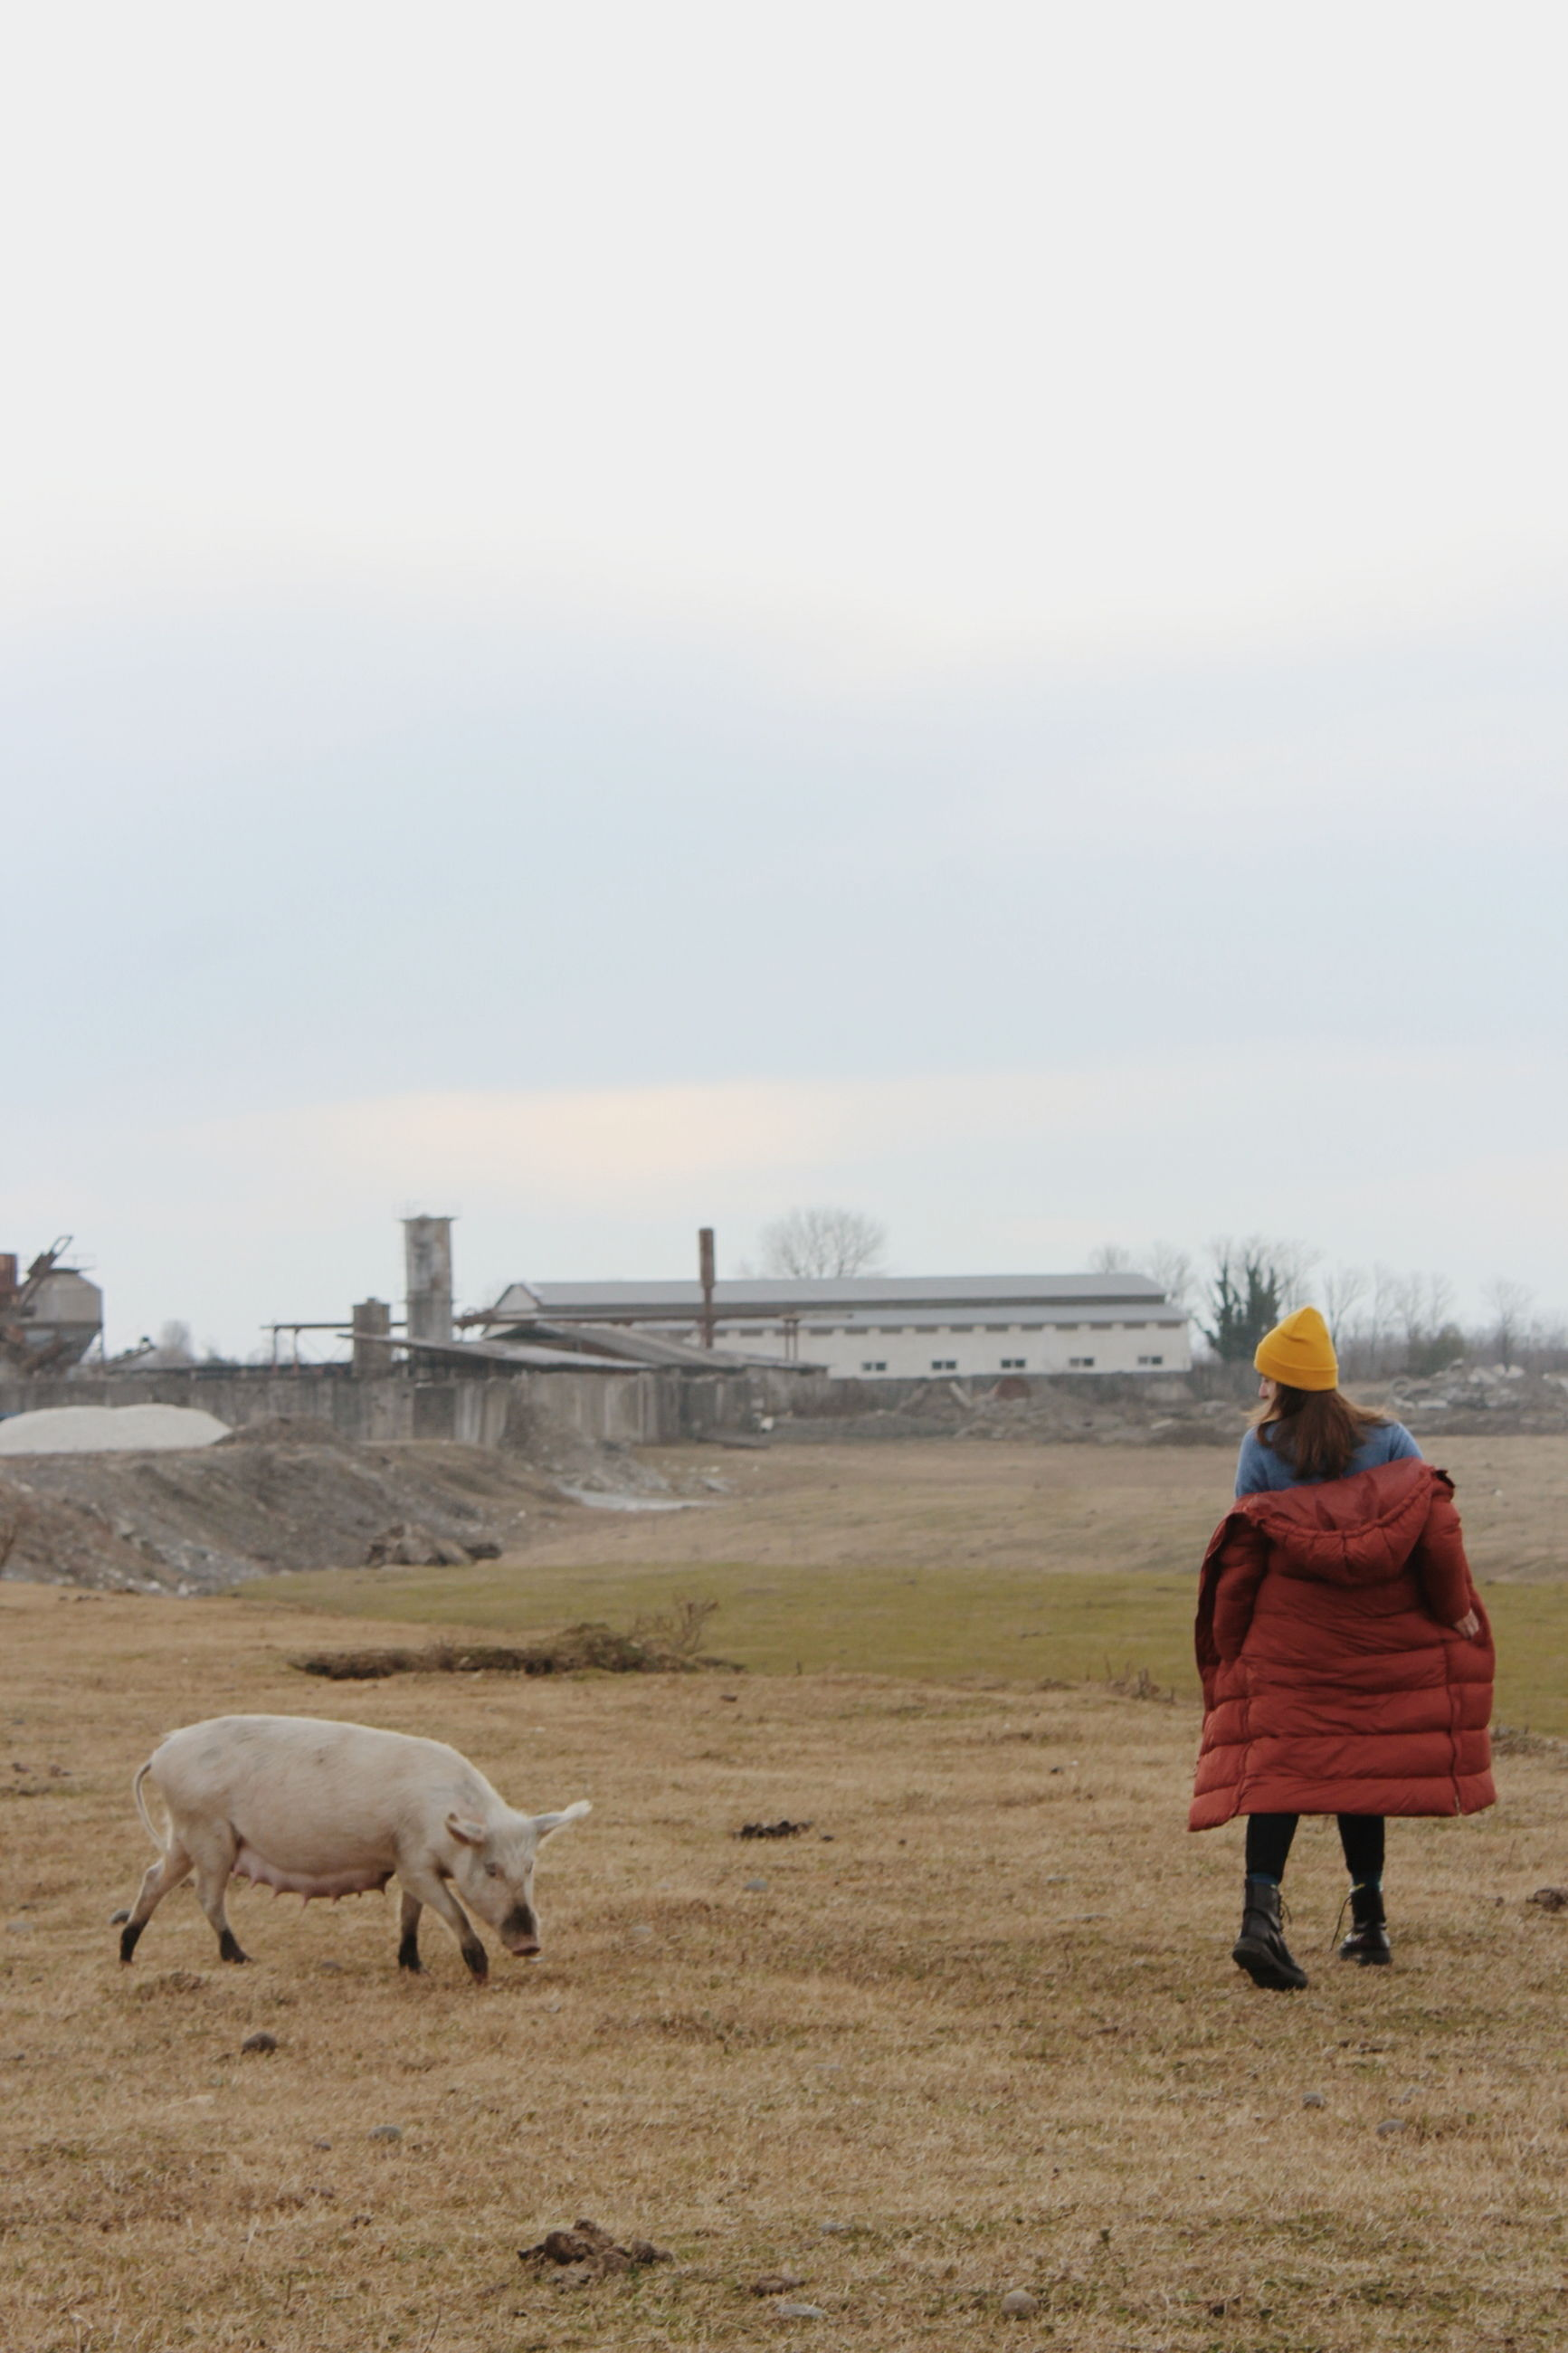 sky, animal themes, field, animal, mammal, land, nature, domestic animals, domestic, pets, real people, livestock, environment, landscape, vertebrate, day, rear view, fog, one person, group of animals, outdoors, hood - clothing